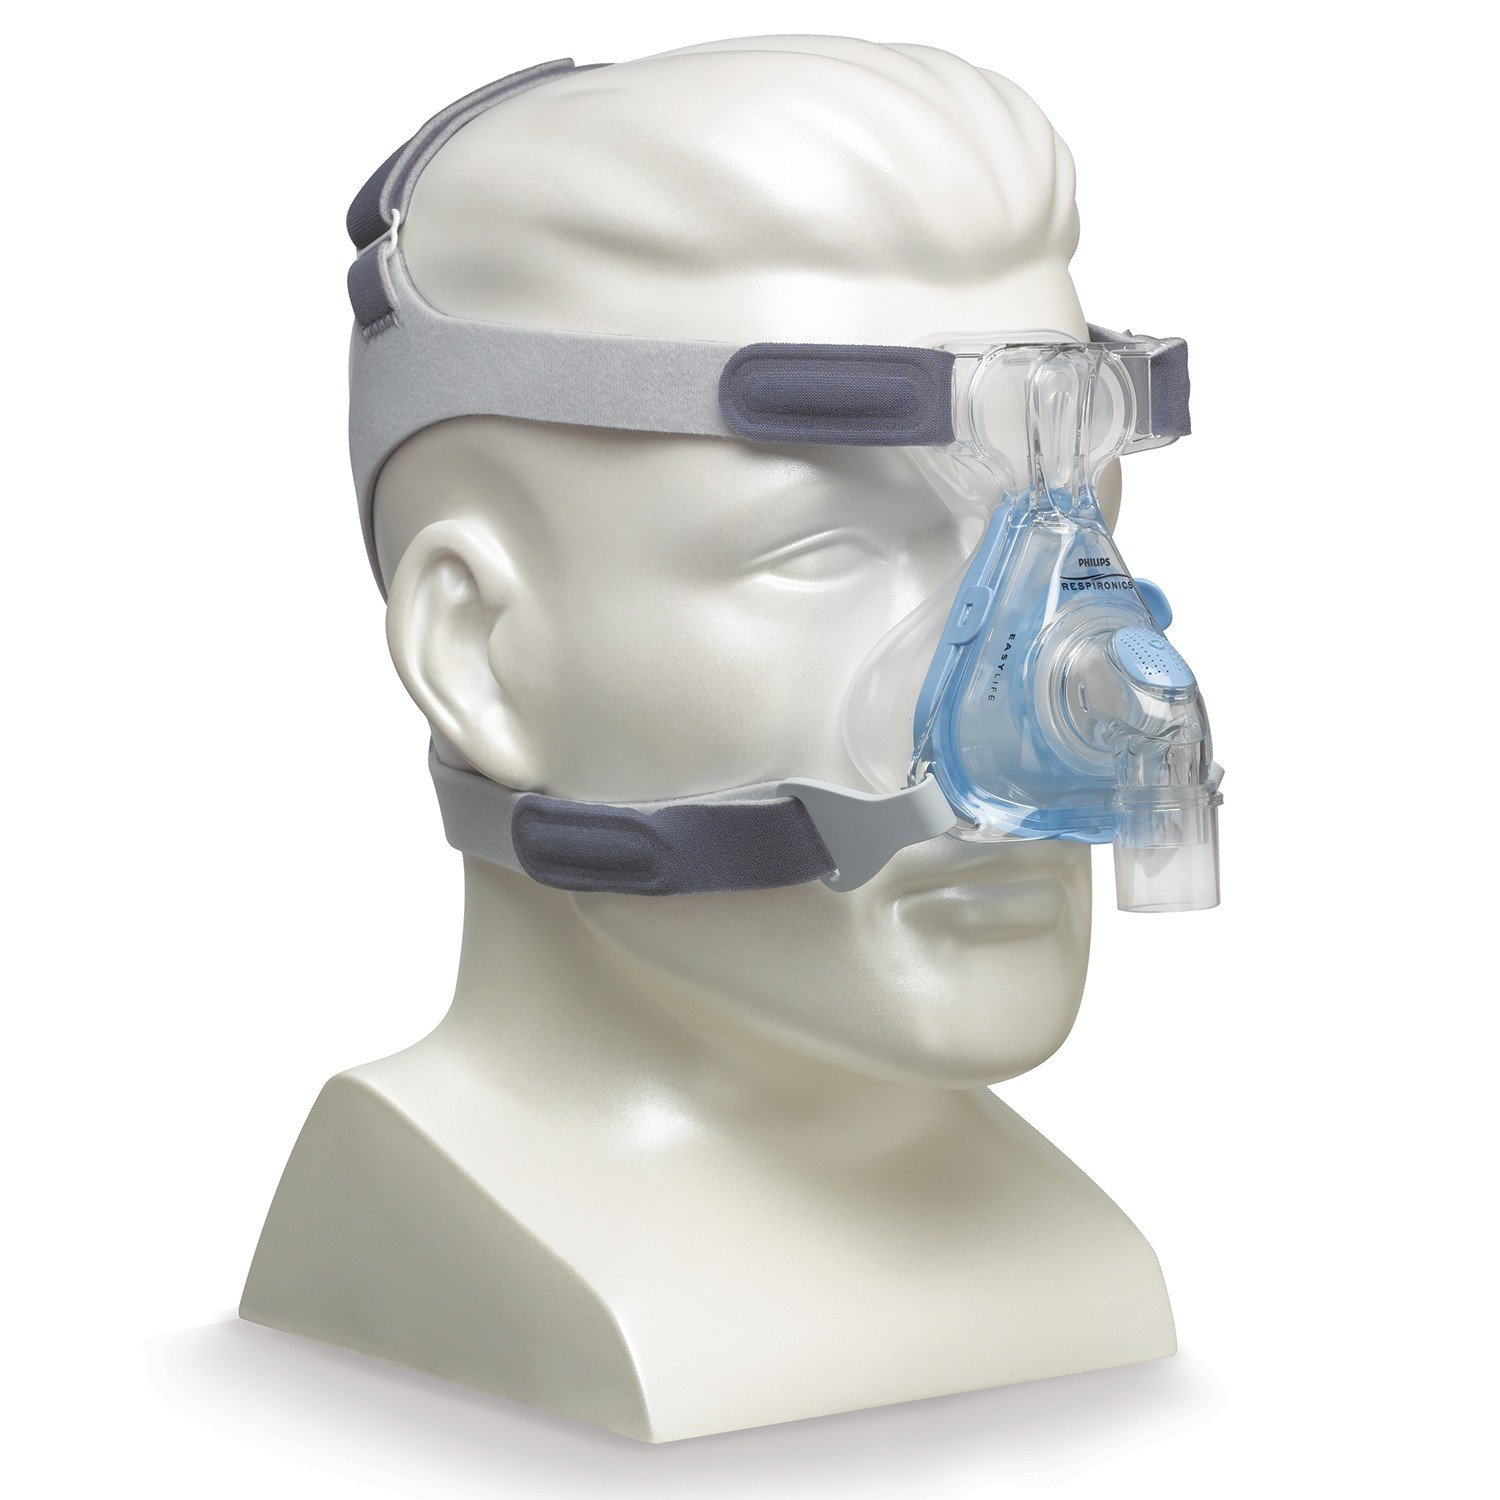 New Respironics EasyLife Nasal CPAP Mask and Headgear, Size M